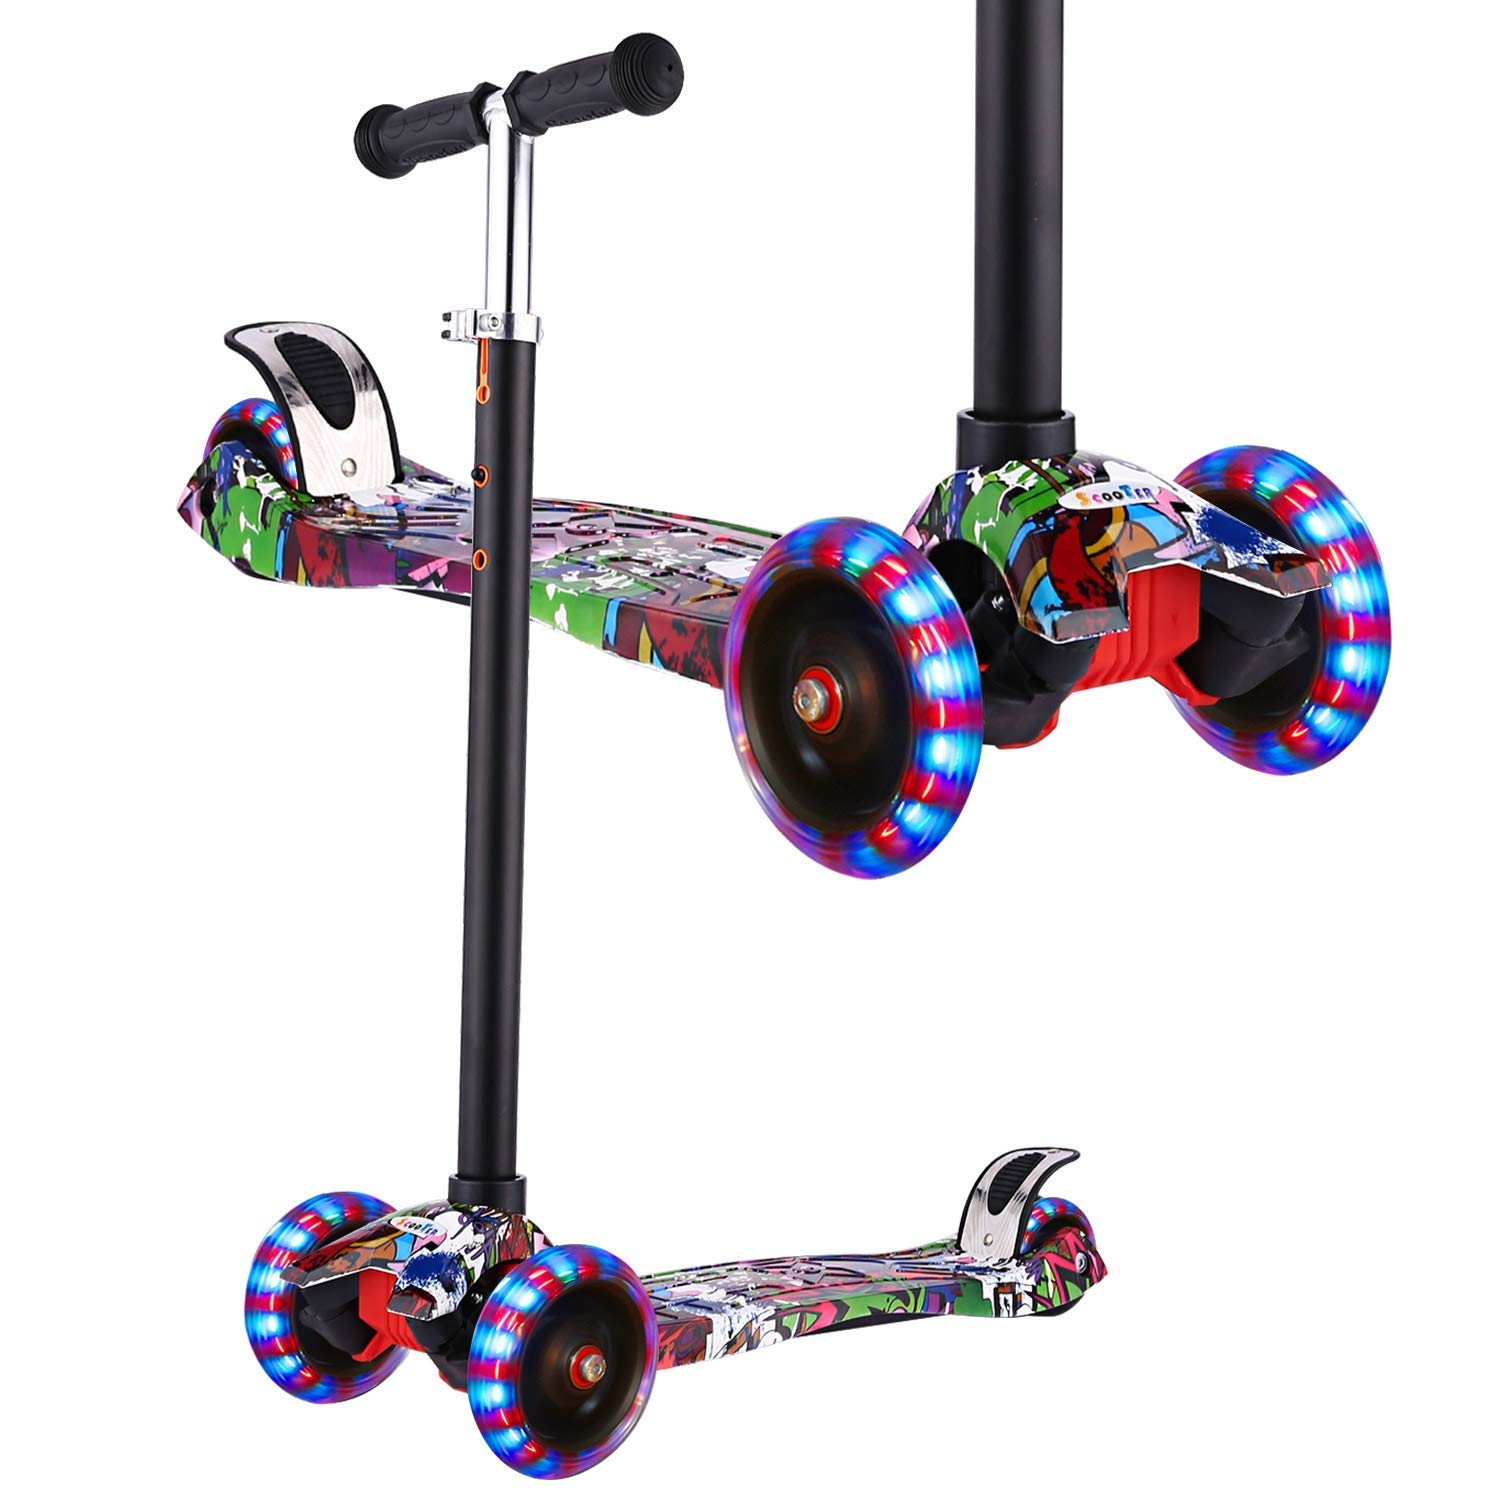 Hikole Kids Scooter - Adjustable, 3 Wheel Mini Adjustable Kick Scooter with LED Light Up Wheels, Gifts for Girls Boys Age 3 to 12, Support 100Lbs by Hikole (Image #2)